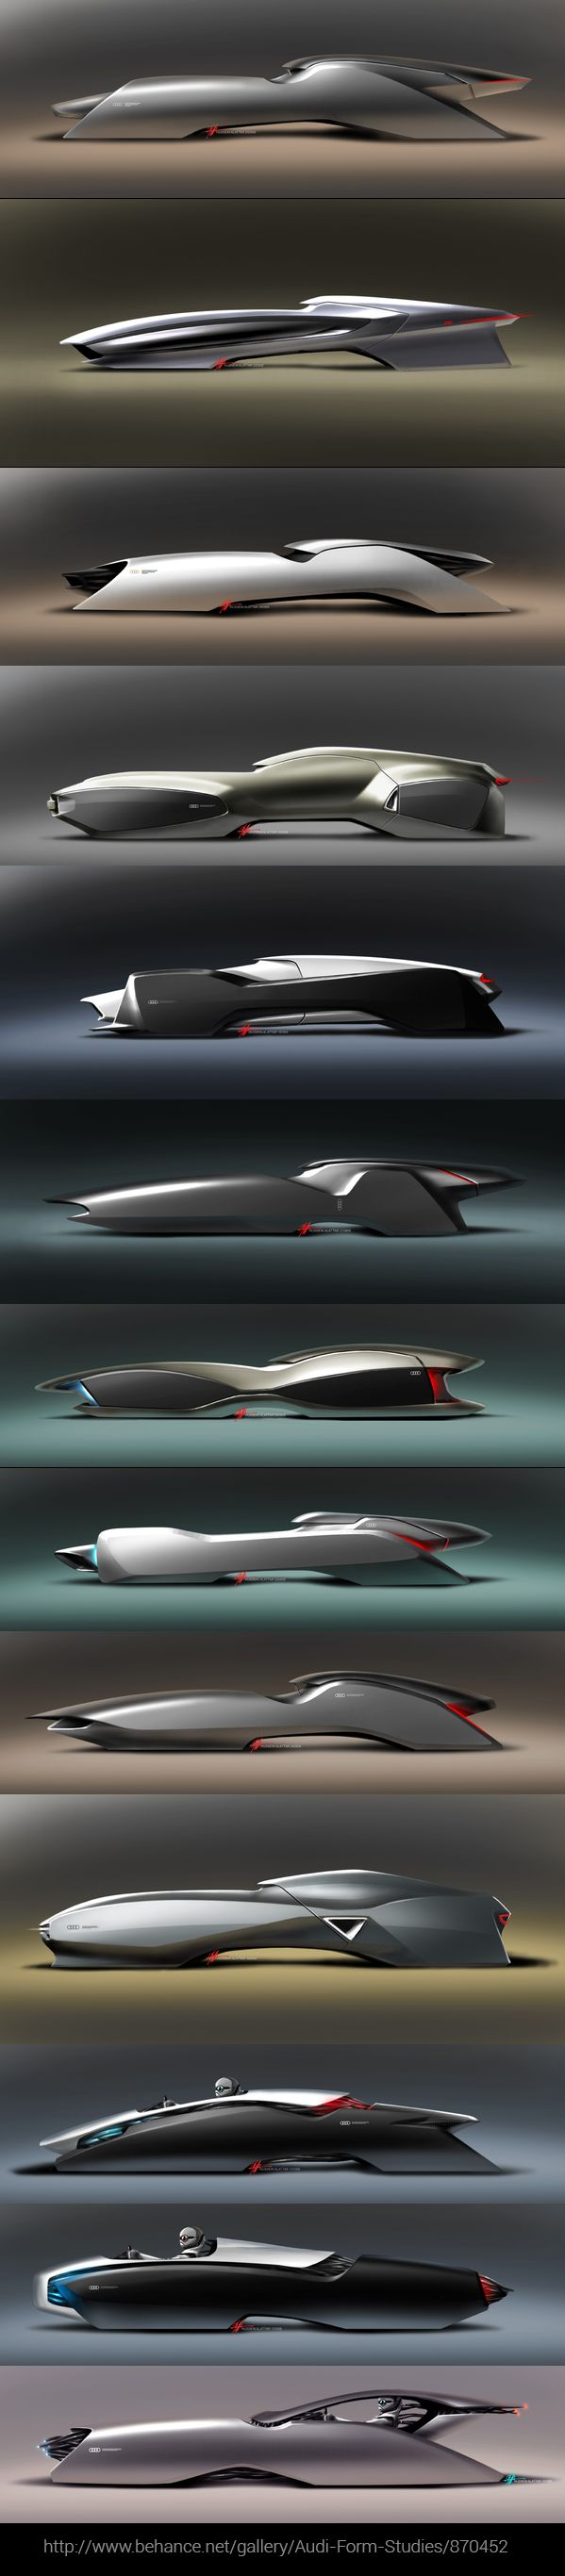 Audi Form Studies/870452 by Hussein Al-Attar